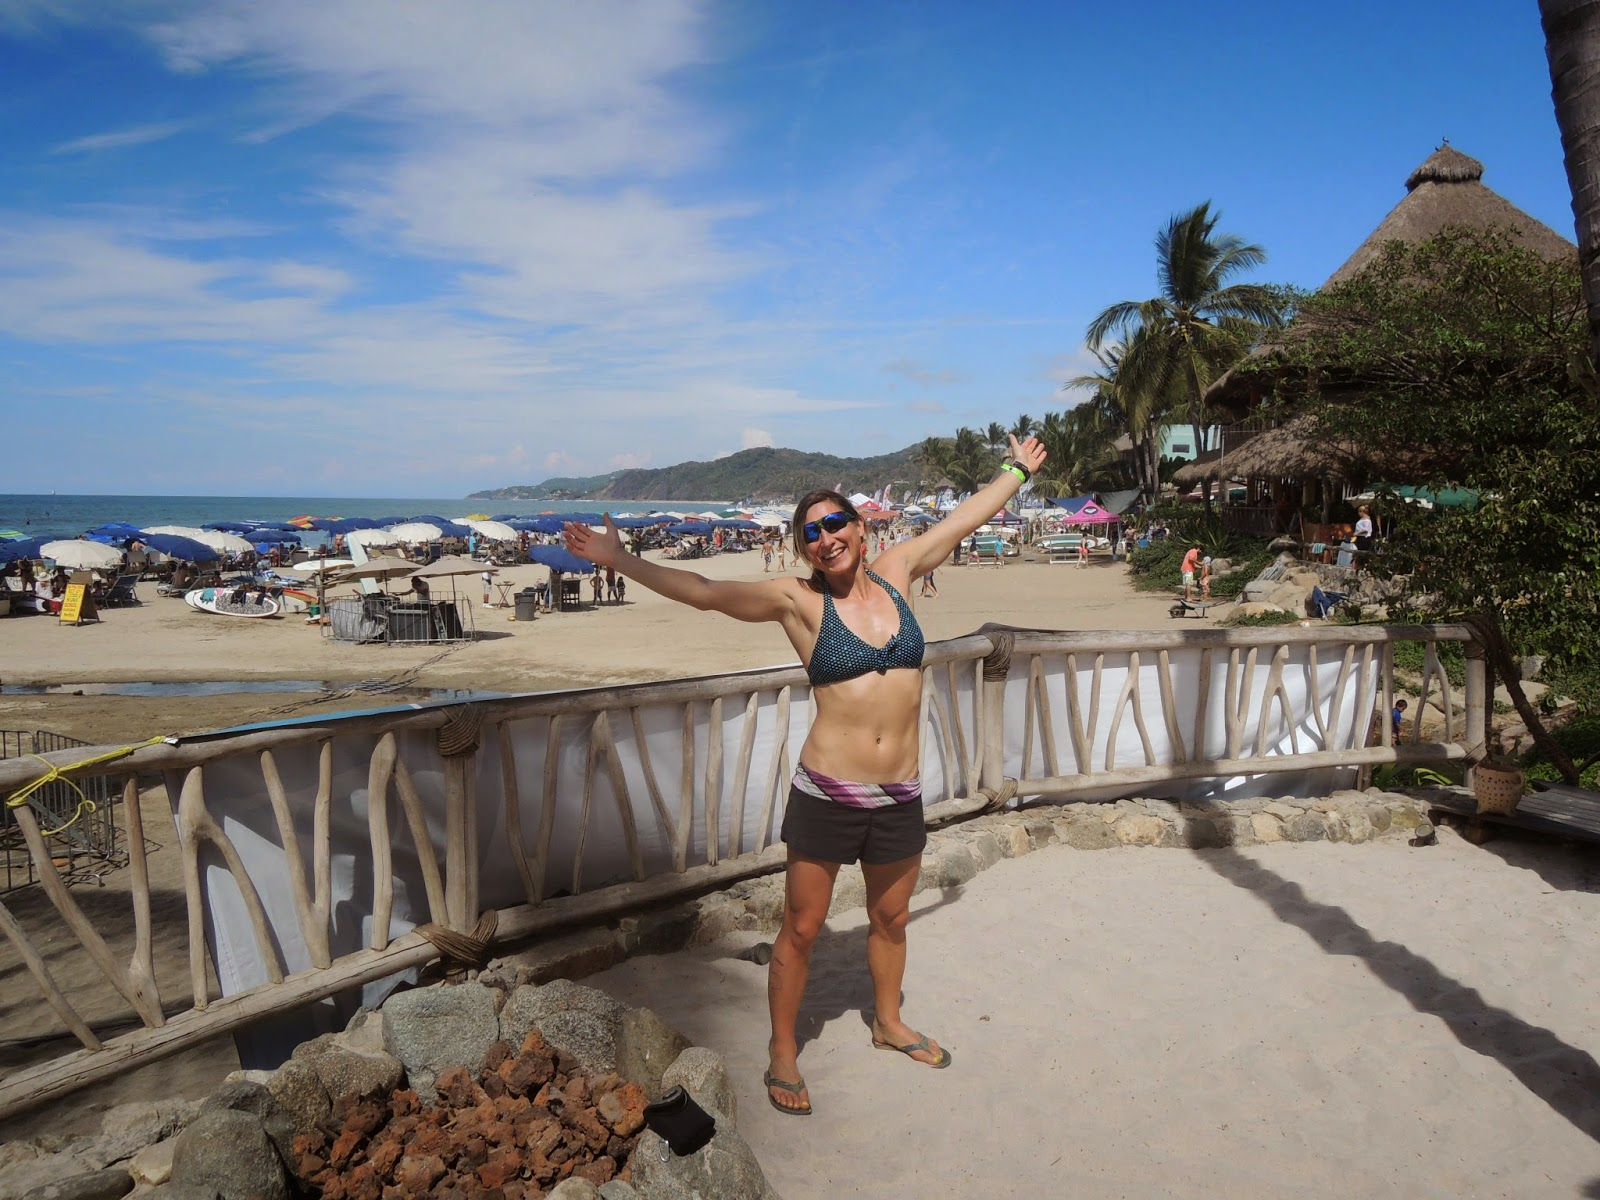 Nikki Rekman Sales Greetings From The Sup Race Scene In Mexico